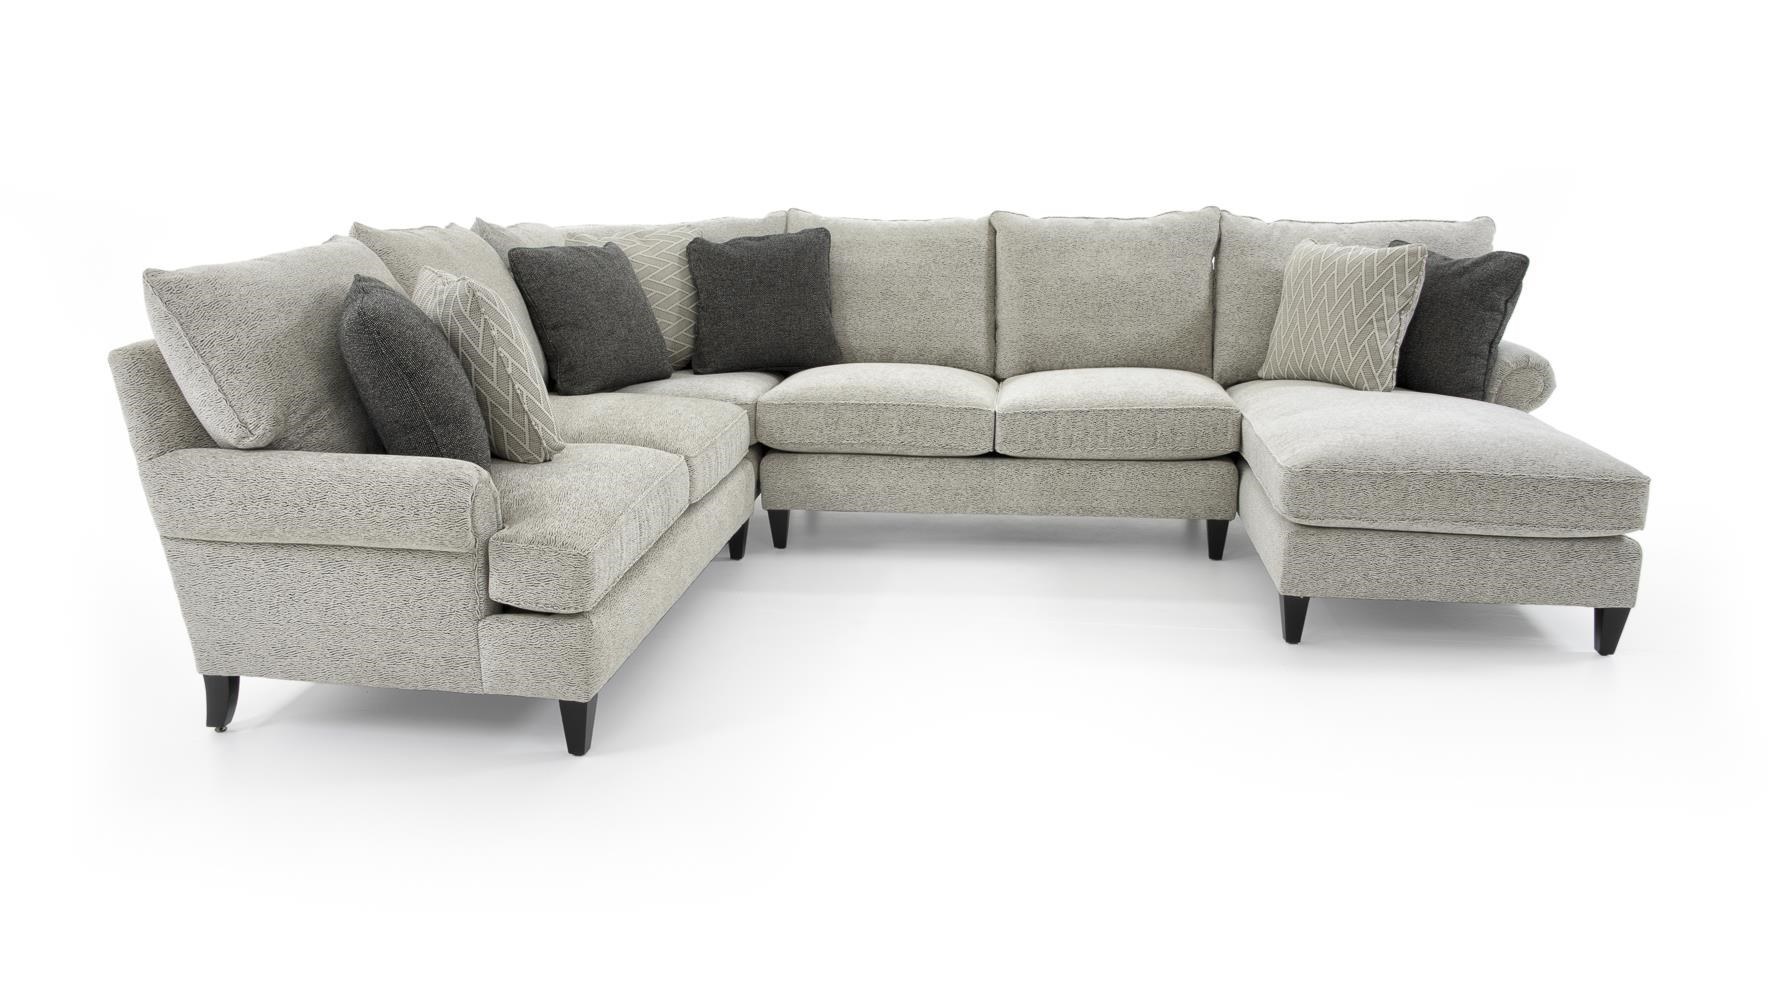 Signature Seating Customizable Sectional w/ Chaise by Bernhardt at Baer's Furniture